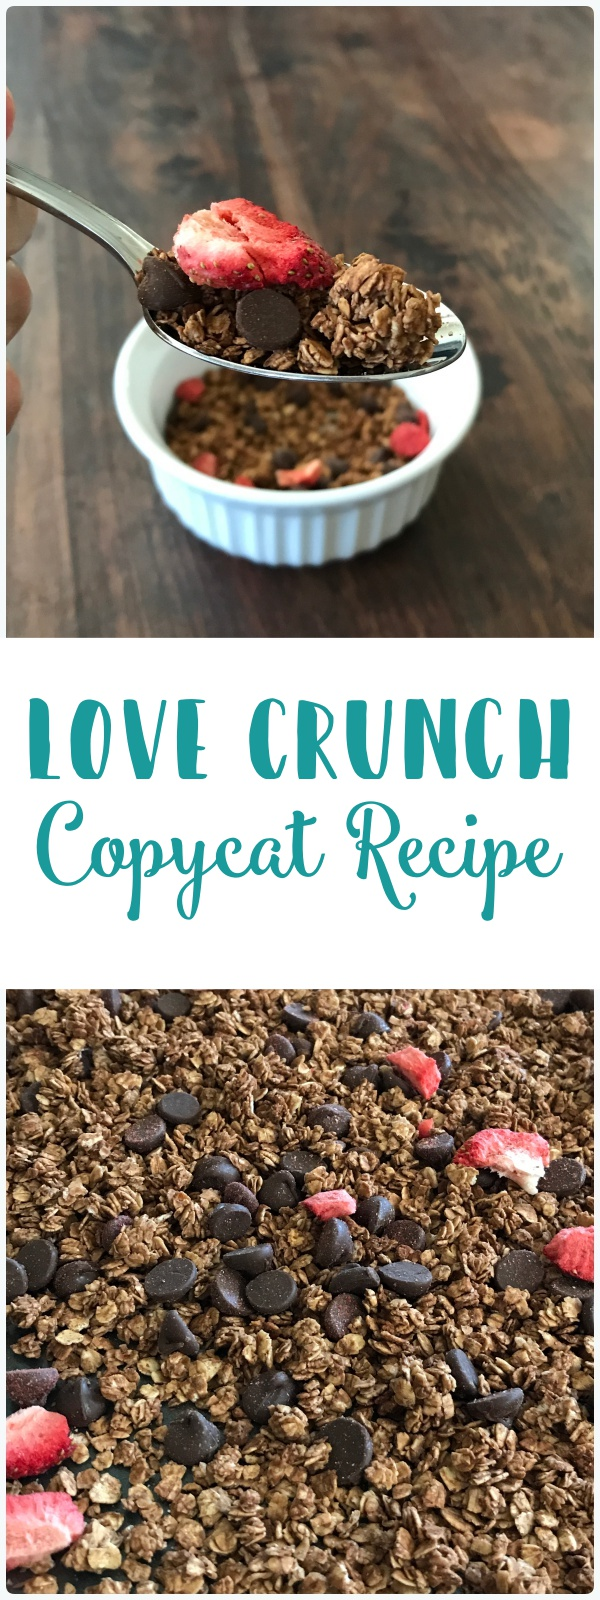 Love Crunch Copy Cat Recipe